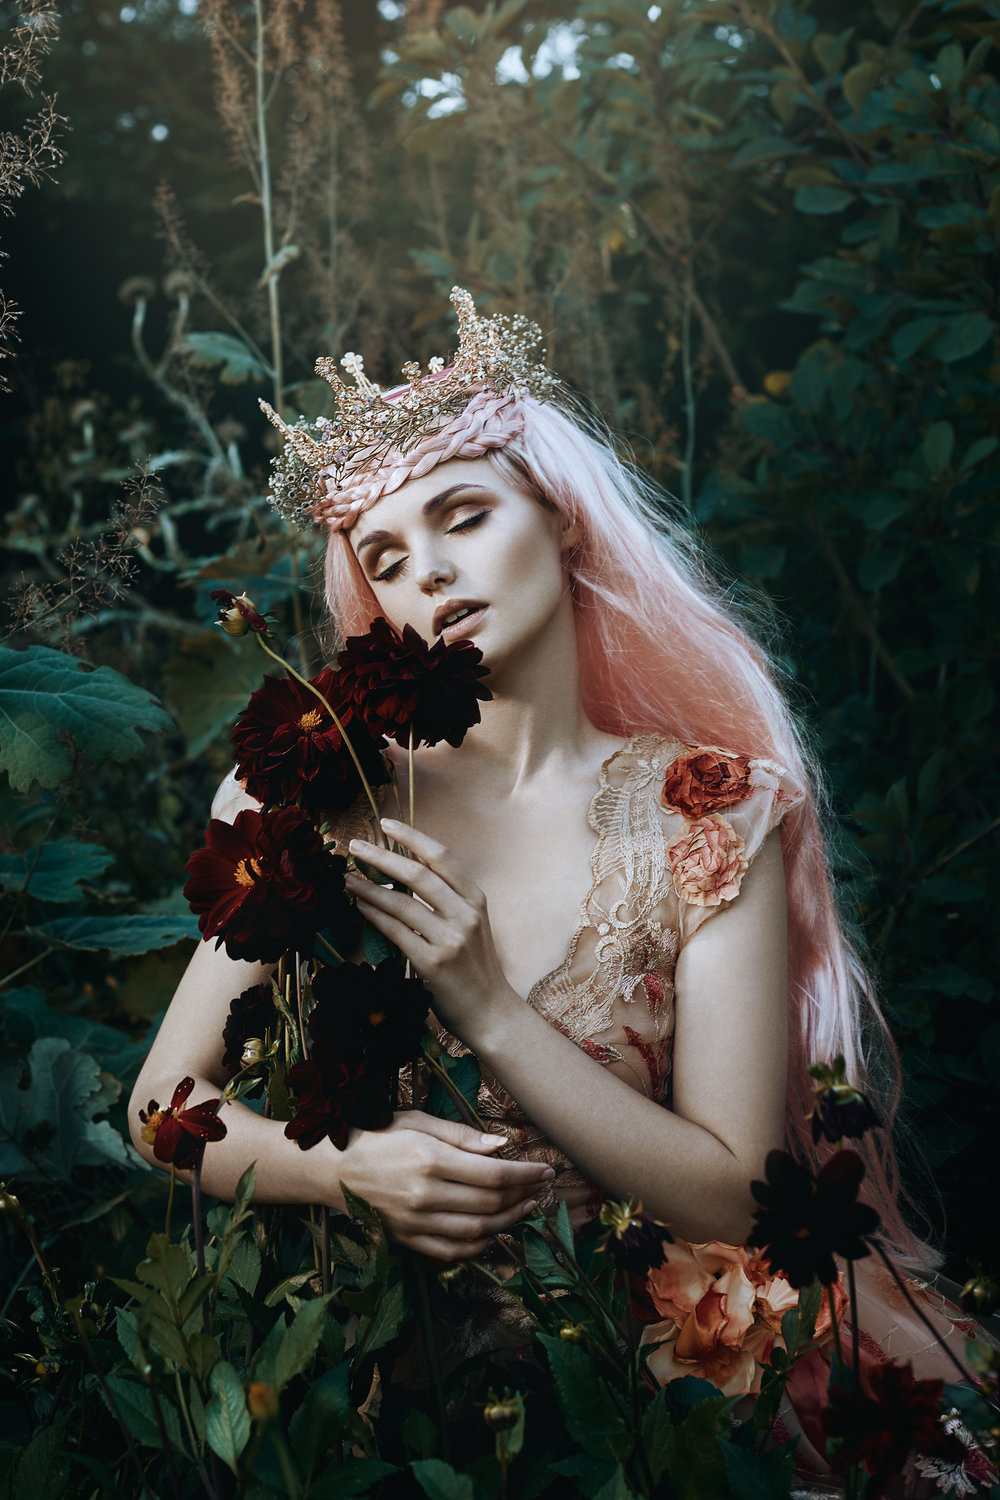 Bella_Kotak_Profoto_Canon_Fairytale_Fantasy_Photography_Portrait_Portraiture_Flowers_FLoral_Queen_Princess_Disney_Fashion_Editorial_A1_Lighting_Pink_Hair_Magical_Ethereal_Solstice_Retouch_4.jpg